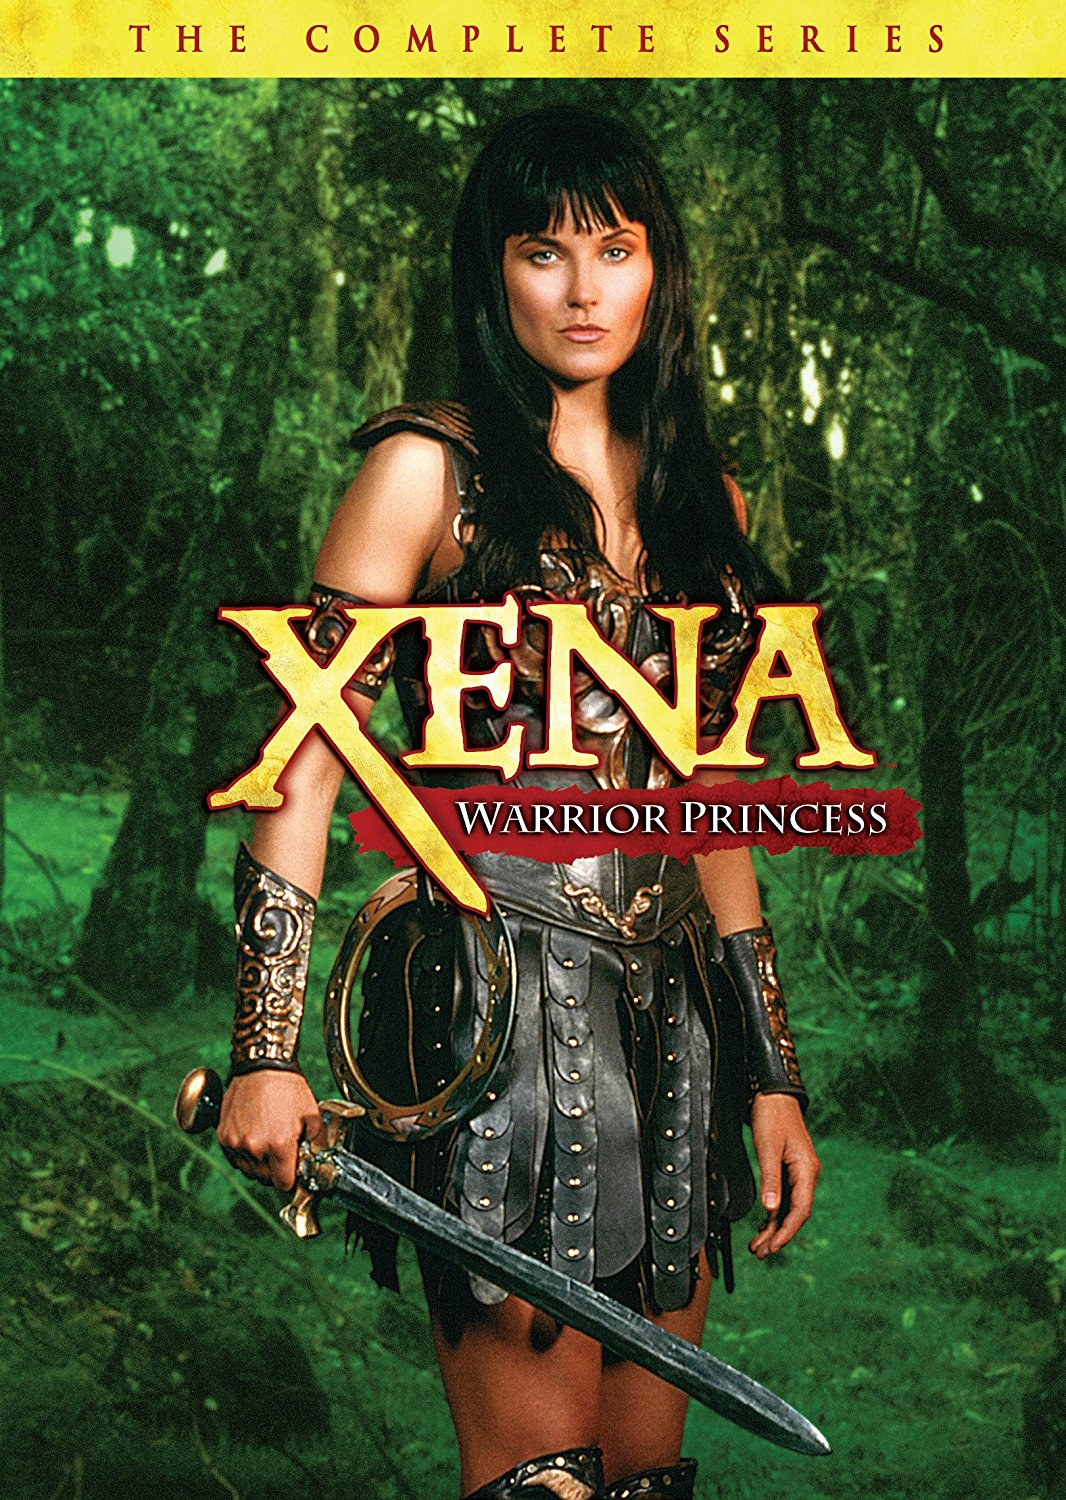 Xena: Warrior Princess (TV Series 1995–2001) - IMDbPro